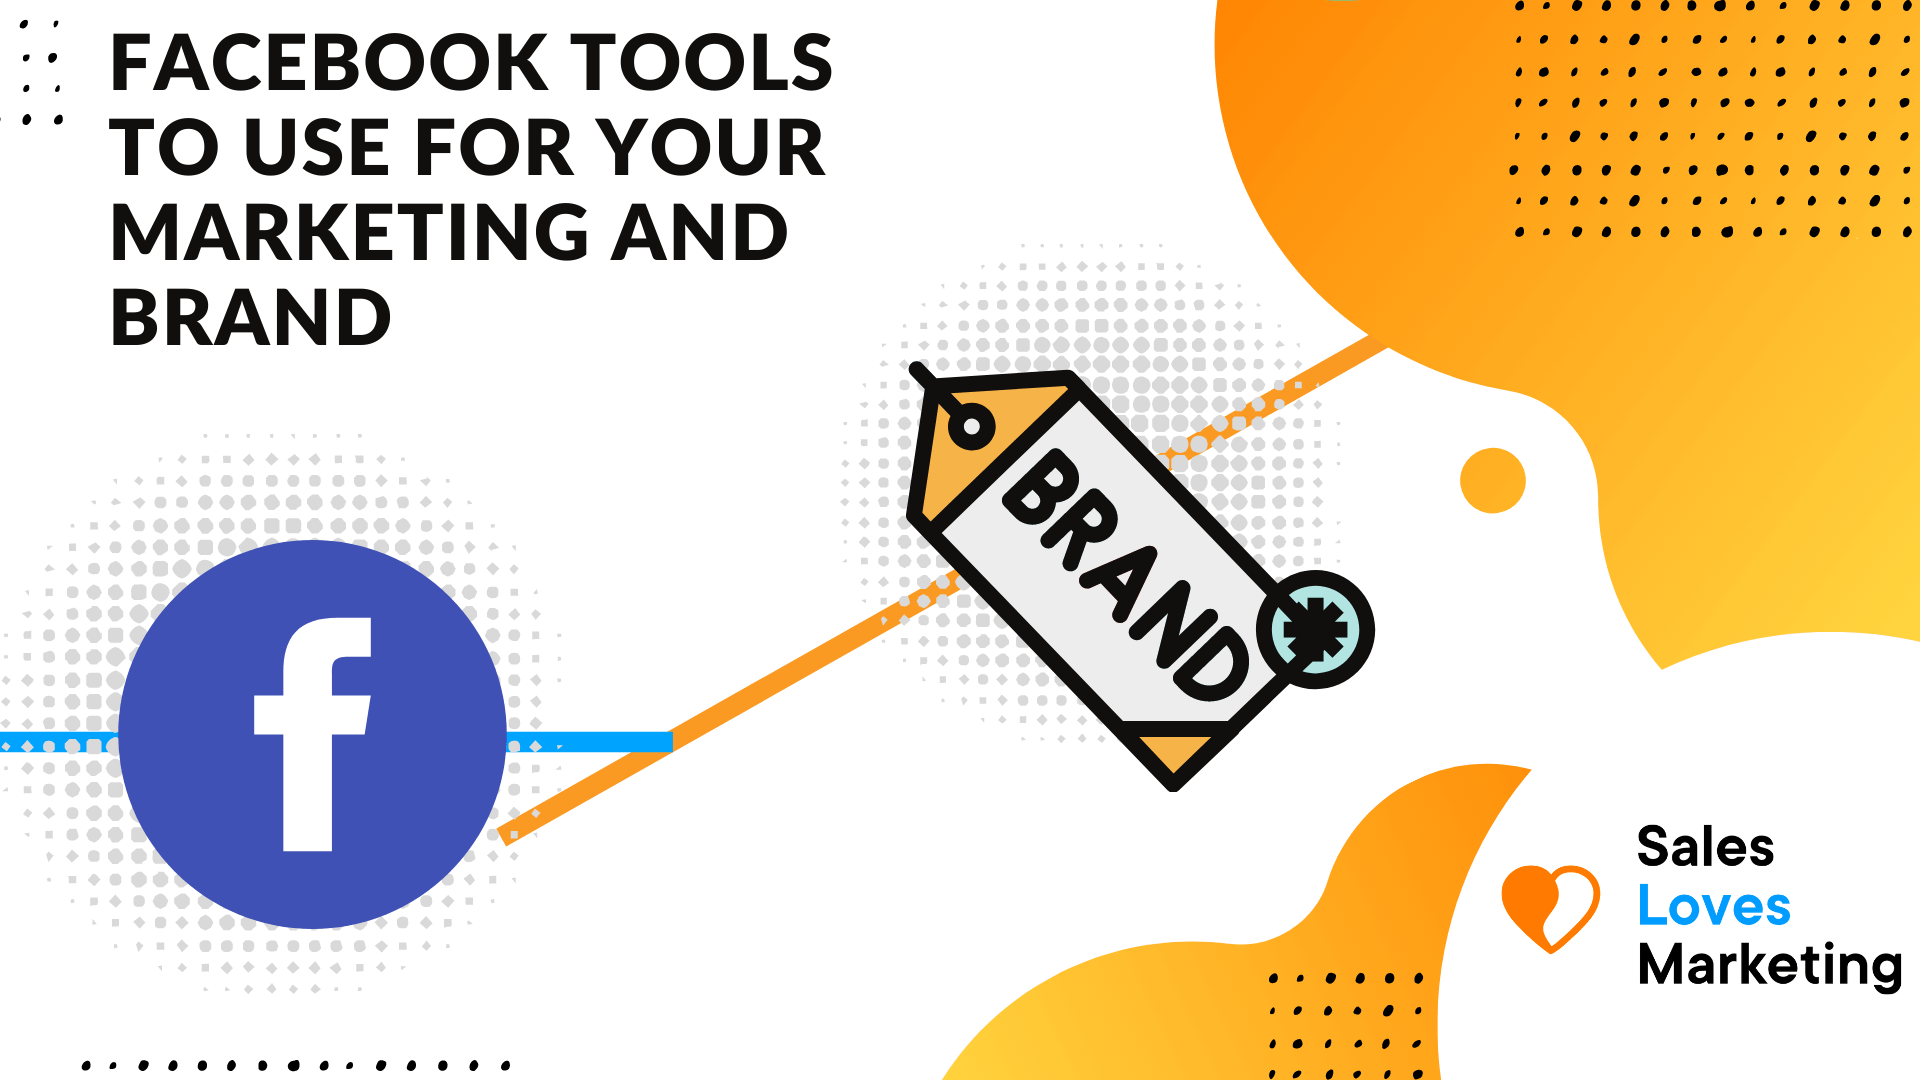 The best facebook tools to grow your brand and marketing.